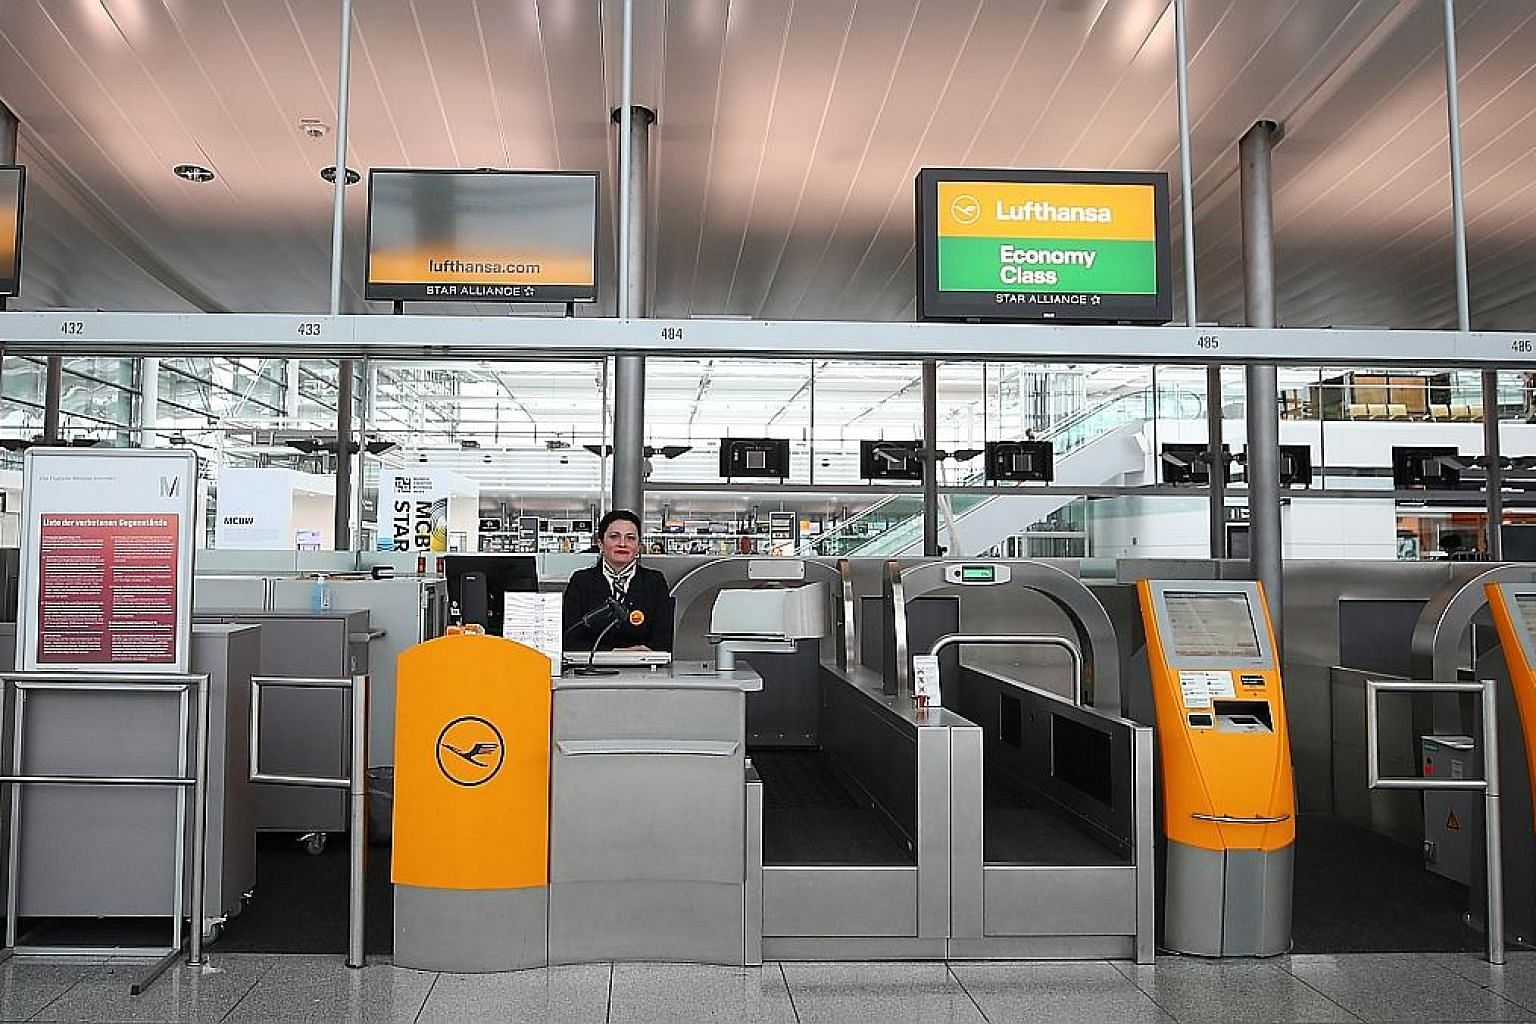 Empty Lufthansa ticket counters at Munich's international airport last month. The carrier has lost 95 per cent of its passengers amid the coronavirus crisis and is looking for help from the German government. Its plight is shared by other carriers in